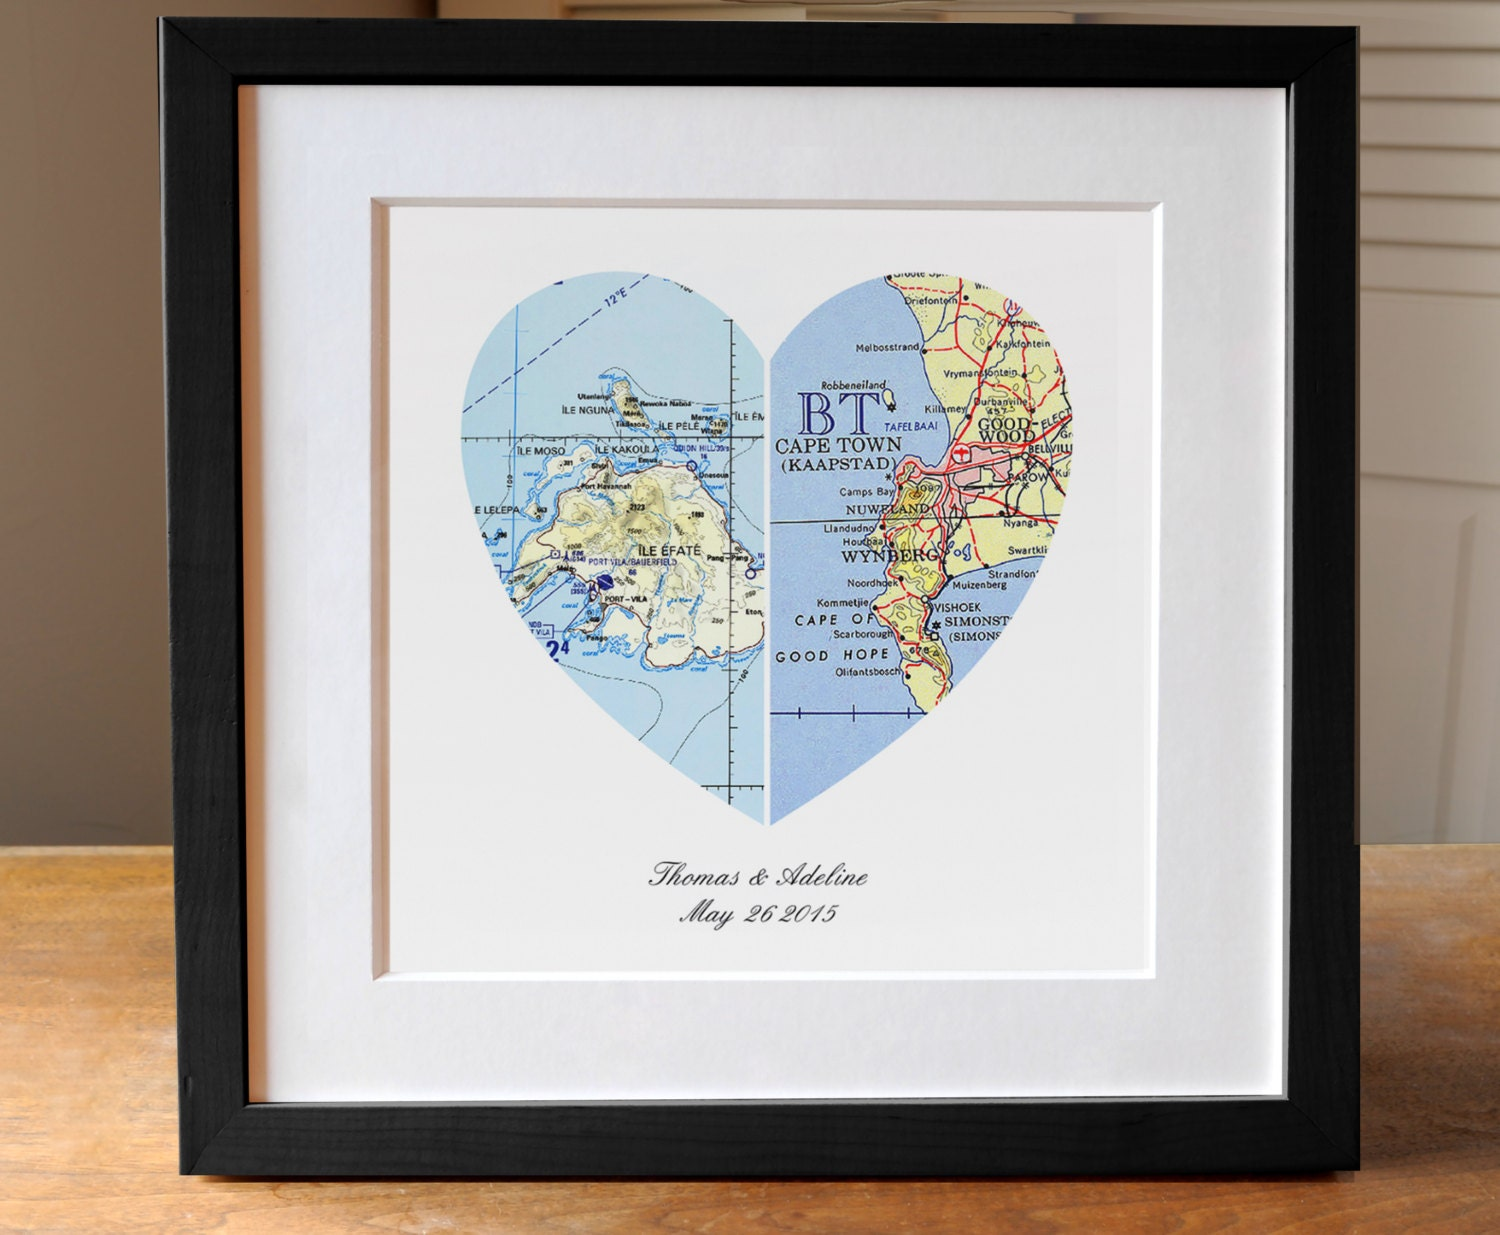 Unique Gifts Wedding: Anniversary Gift Wedding Gift Map Art Heart Map Engagement